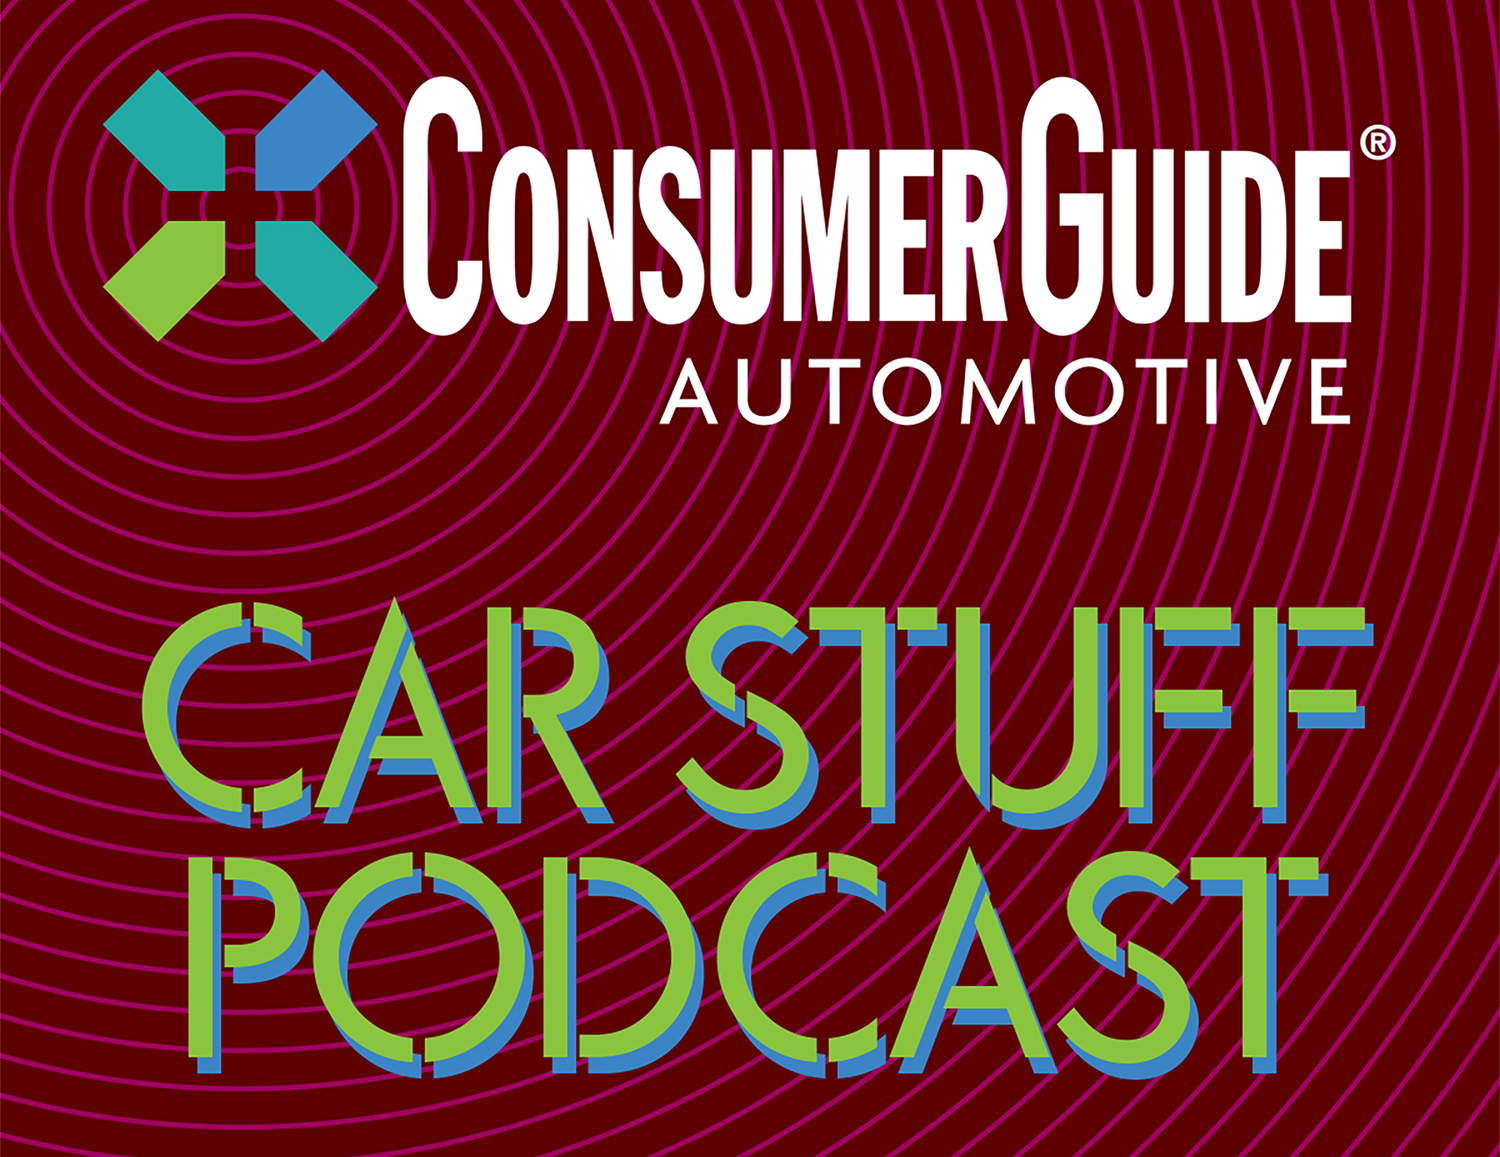 Consumer Guide Car Stuff Podcast, Jeep Wrangler Diesel